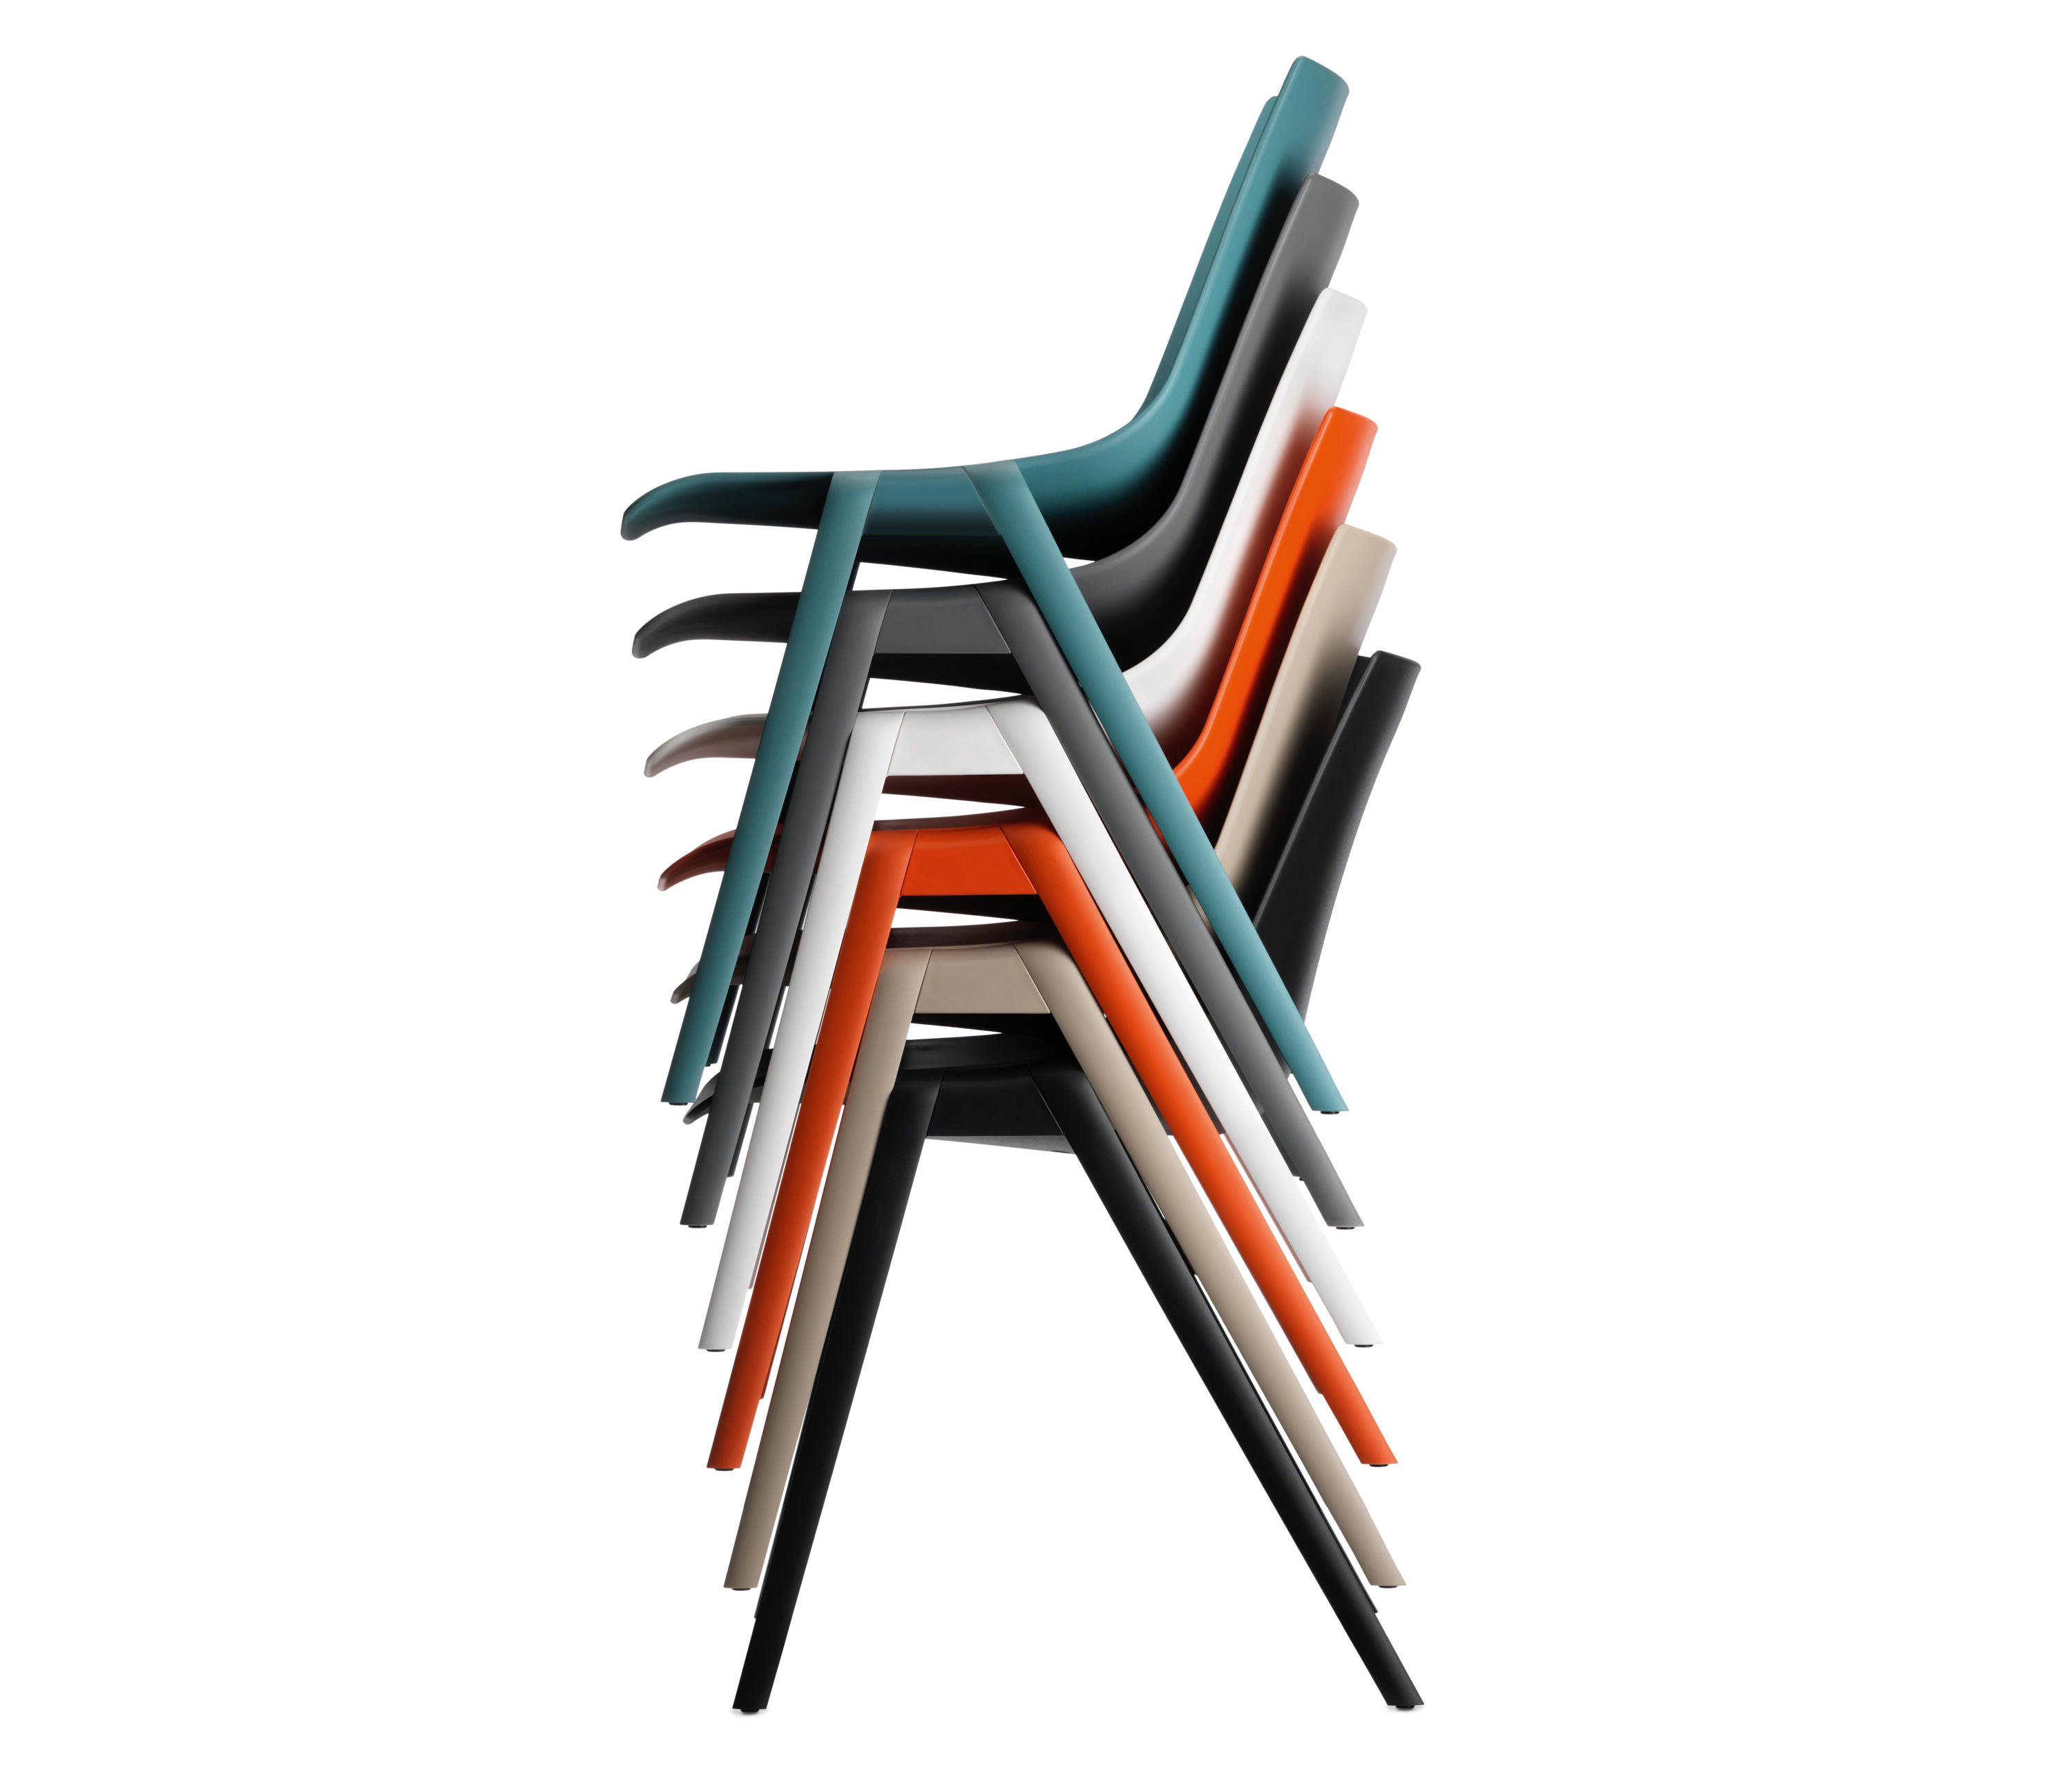 Aula Armchair by Wolfgang C. R. Mezger for Wilkhahn